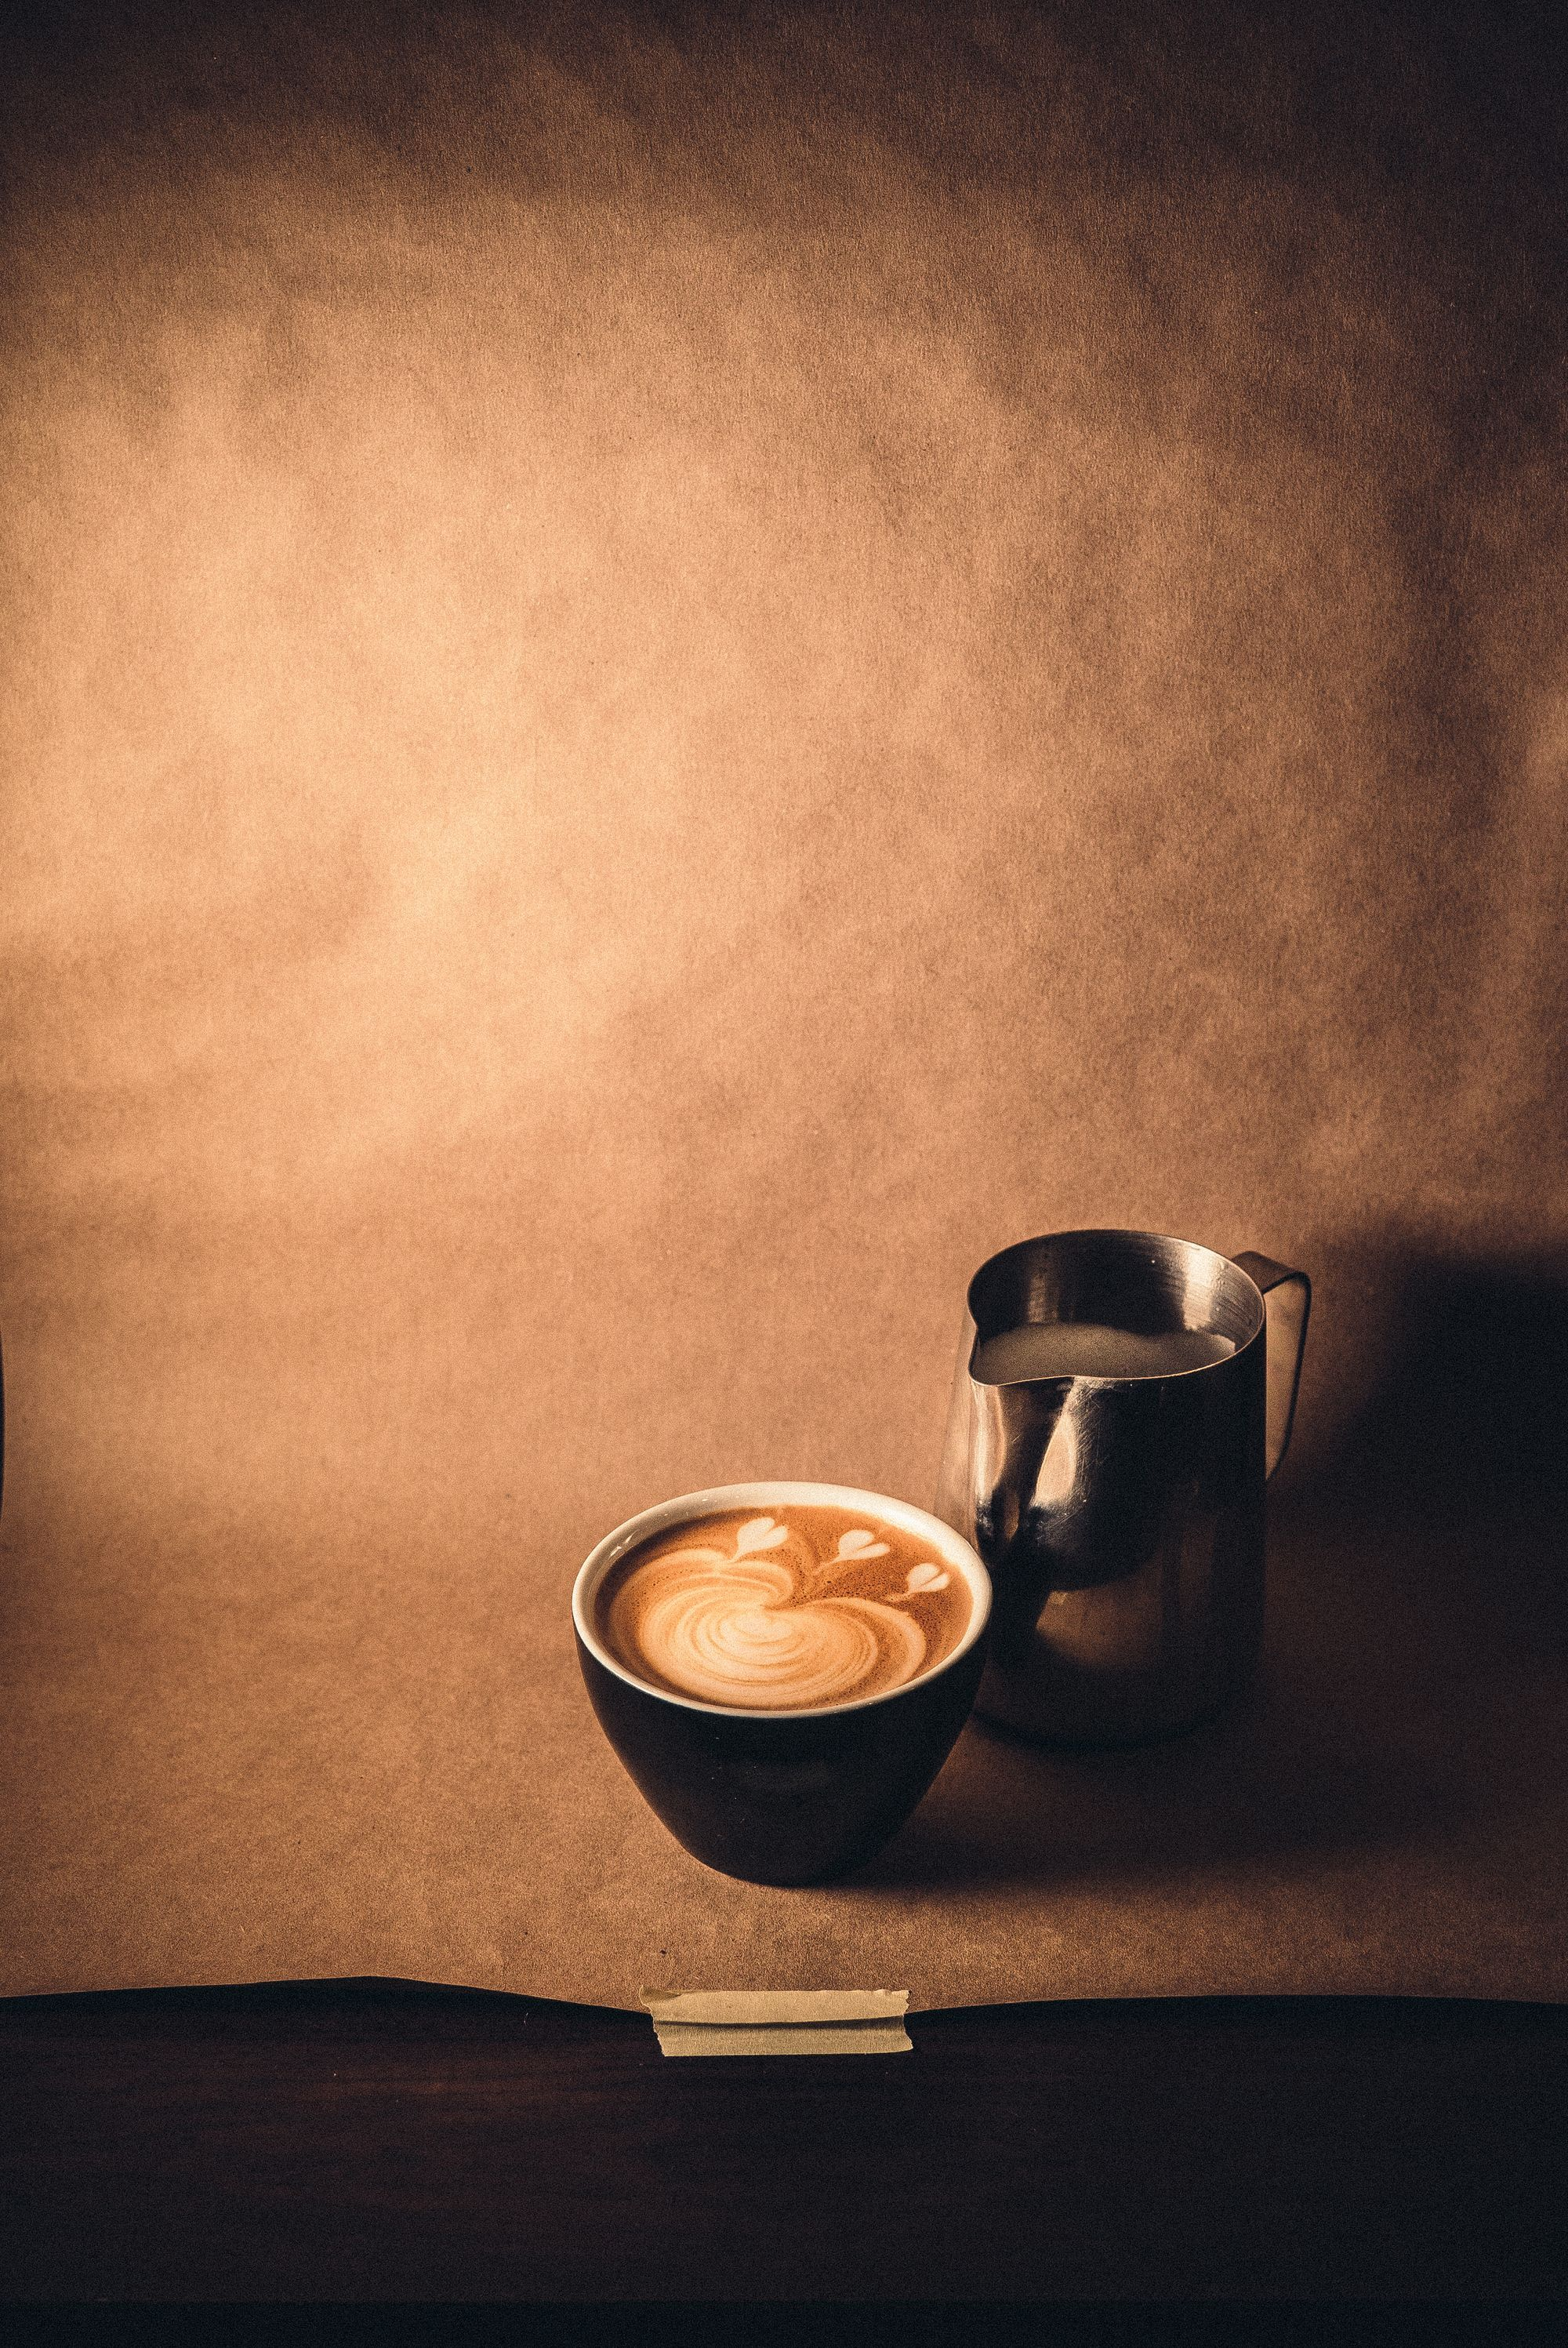 Photo of a latte and a milk pitcher.